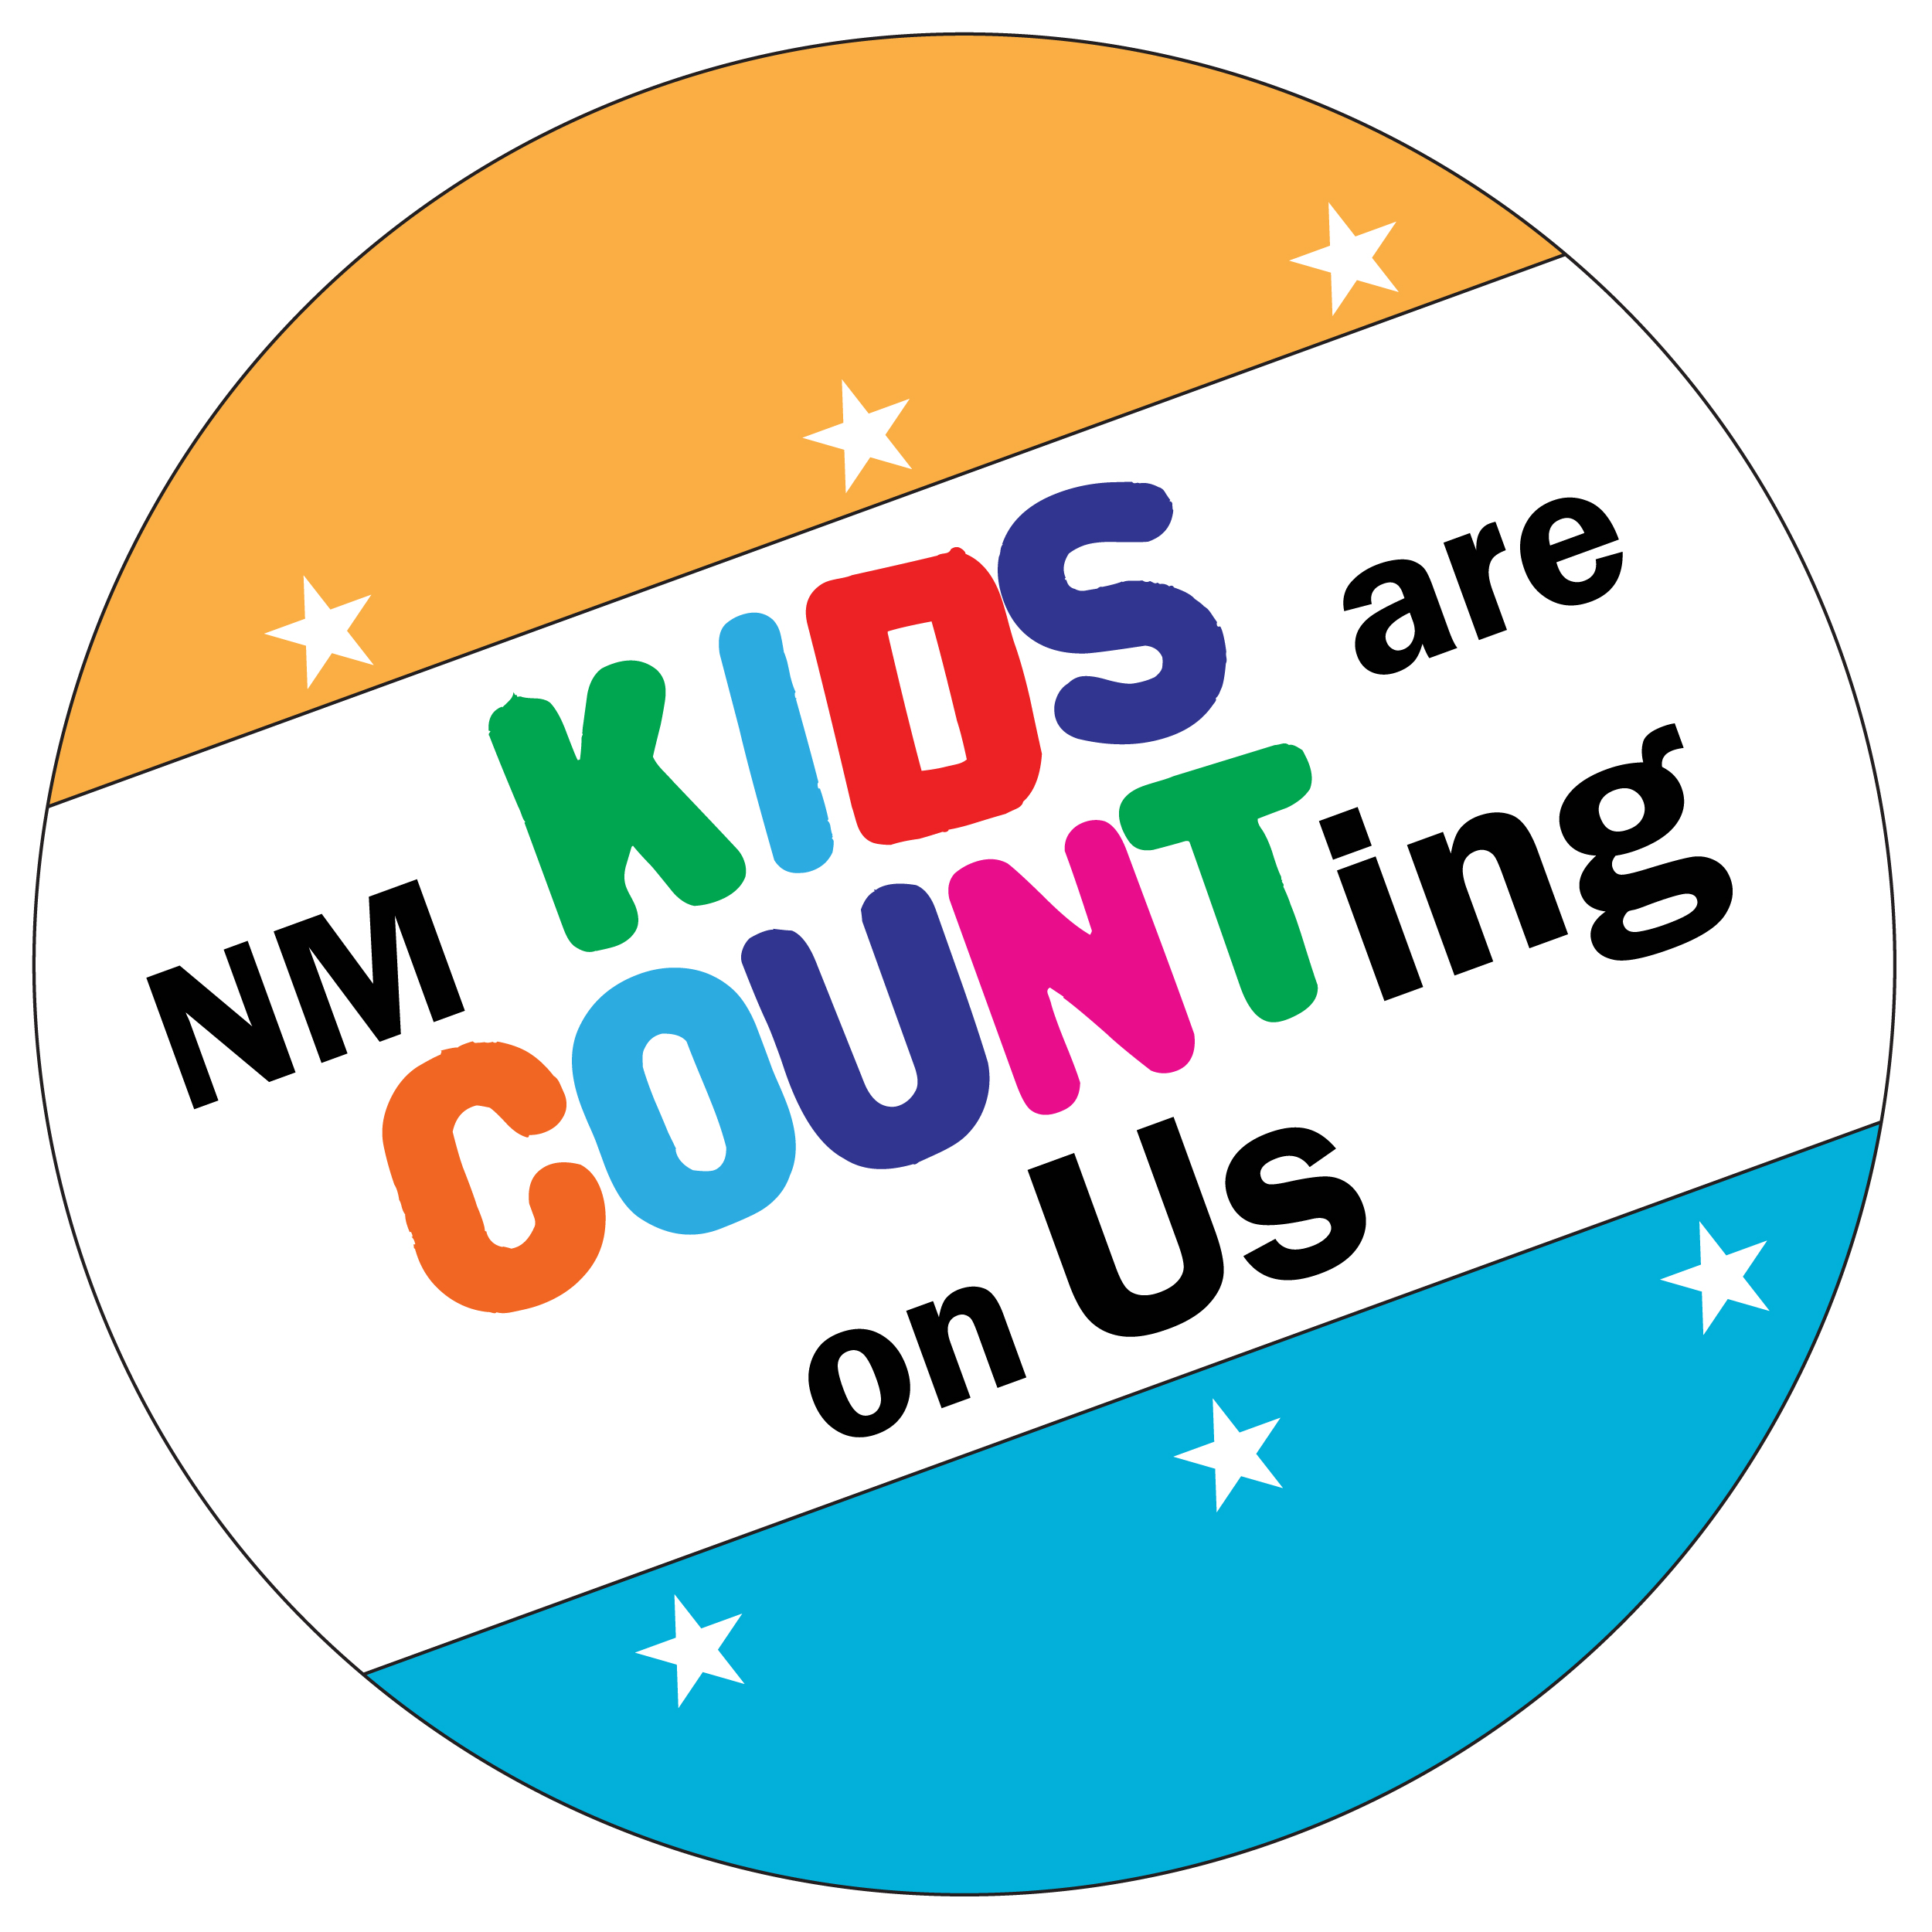 Kids Count campaign